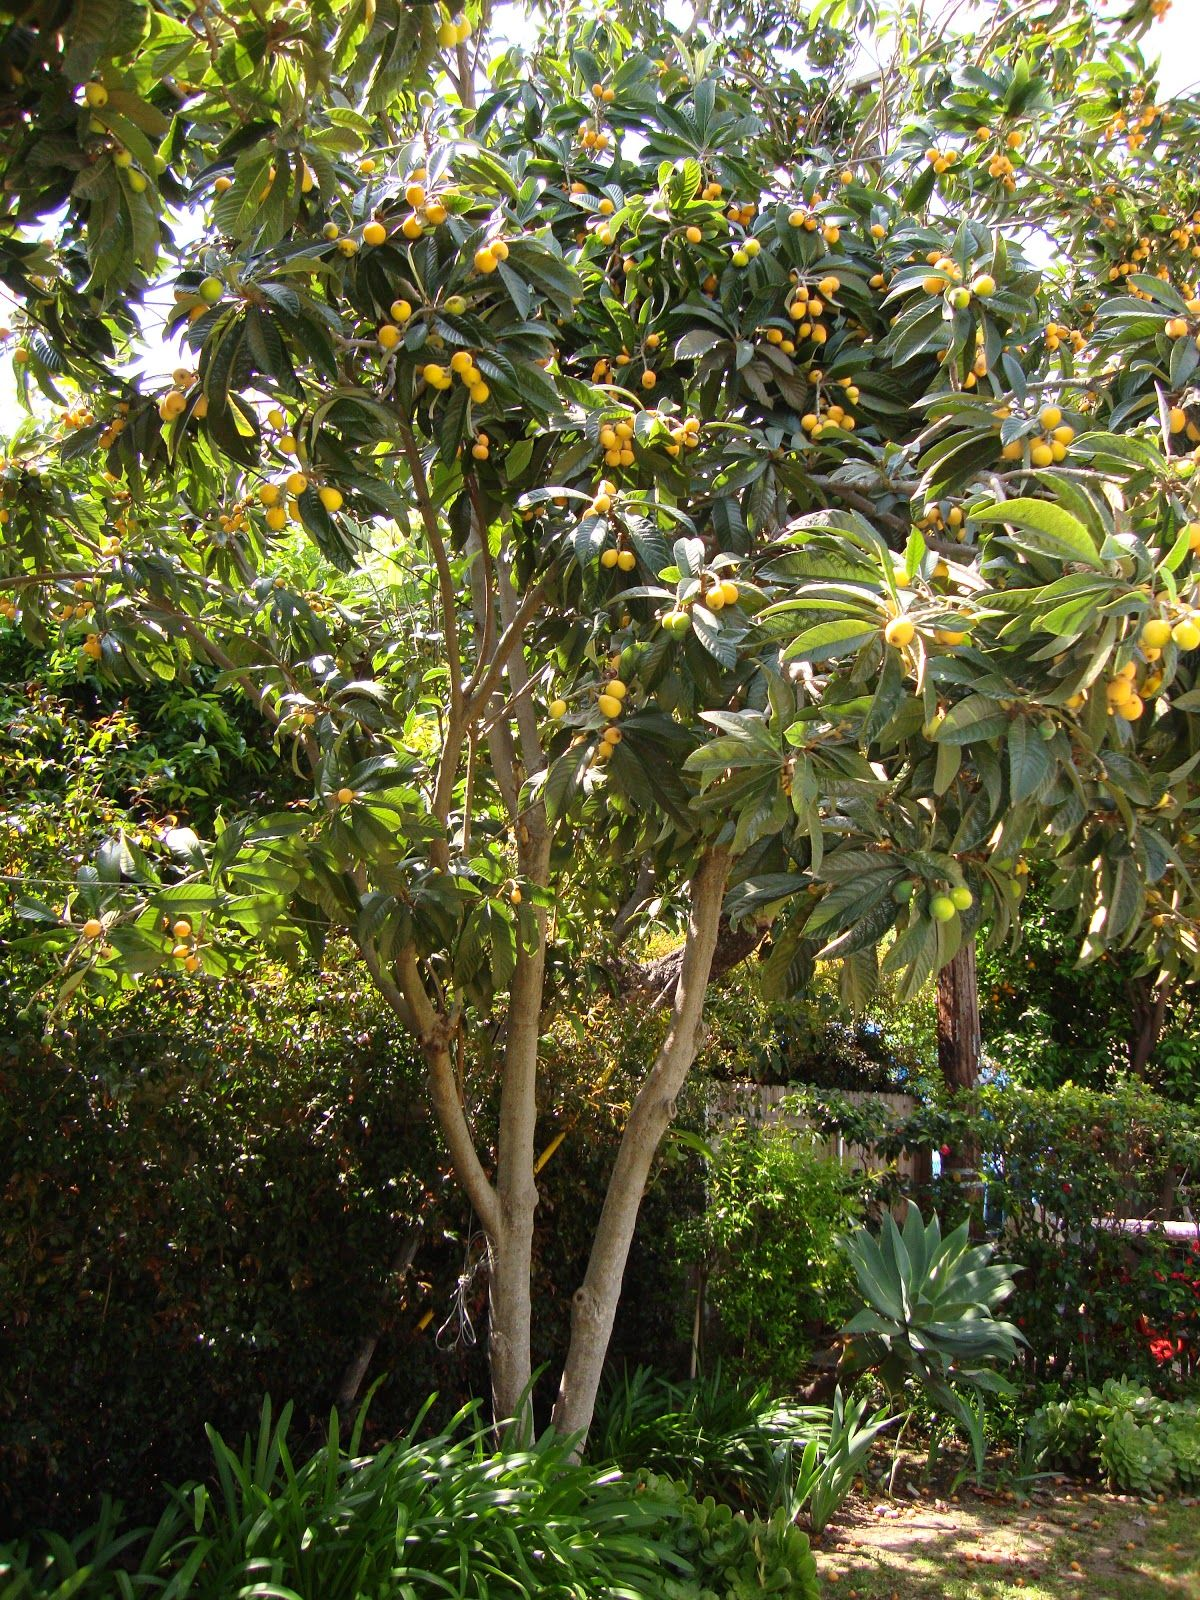 How To Grow Loquat, Growing Loquat Tree From Seed